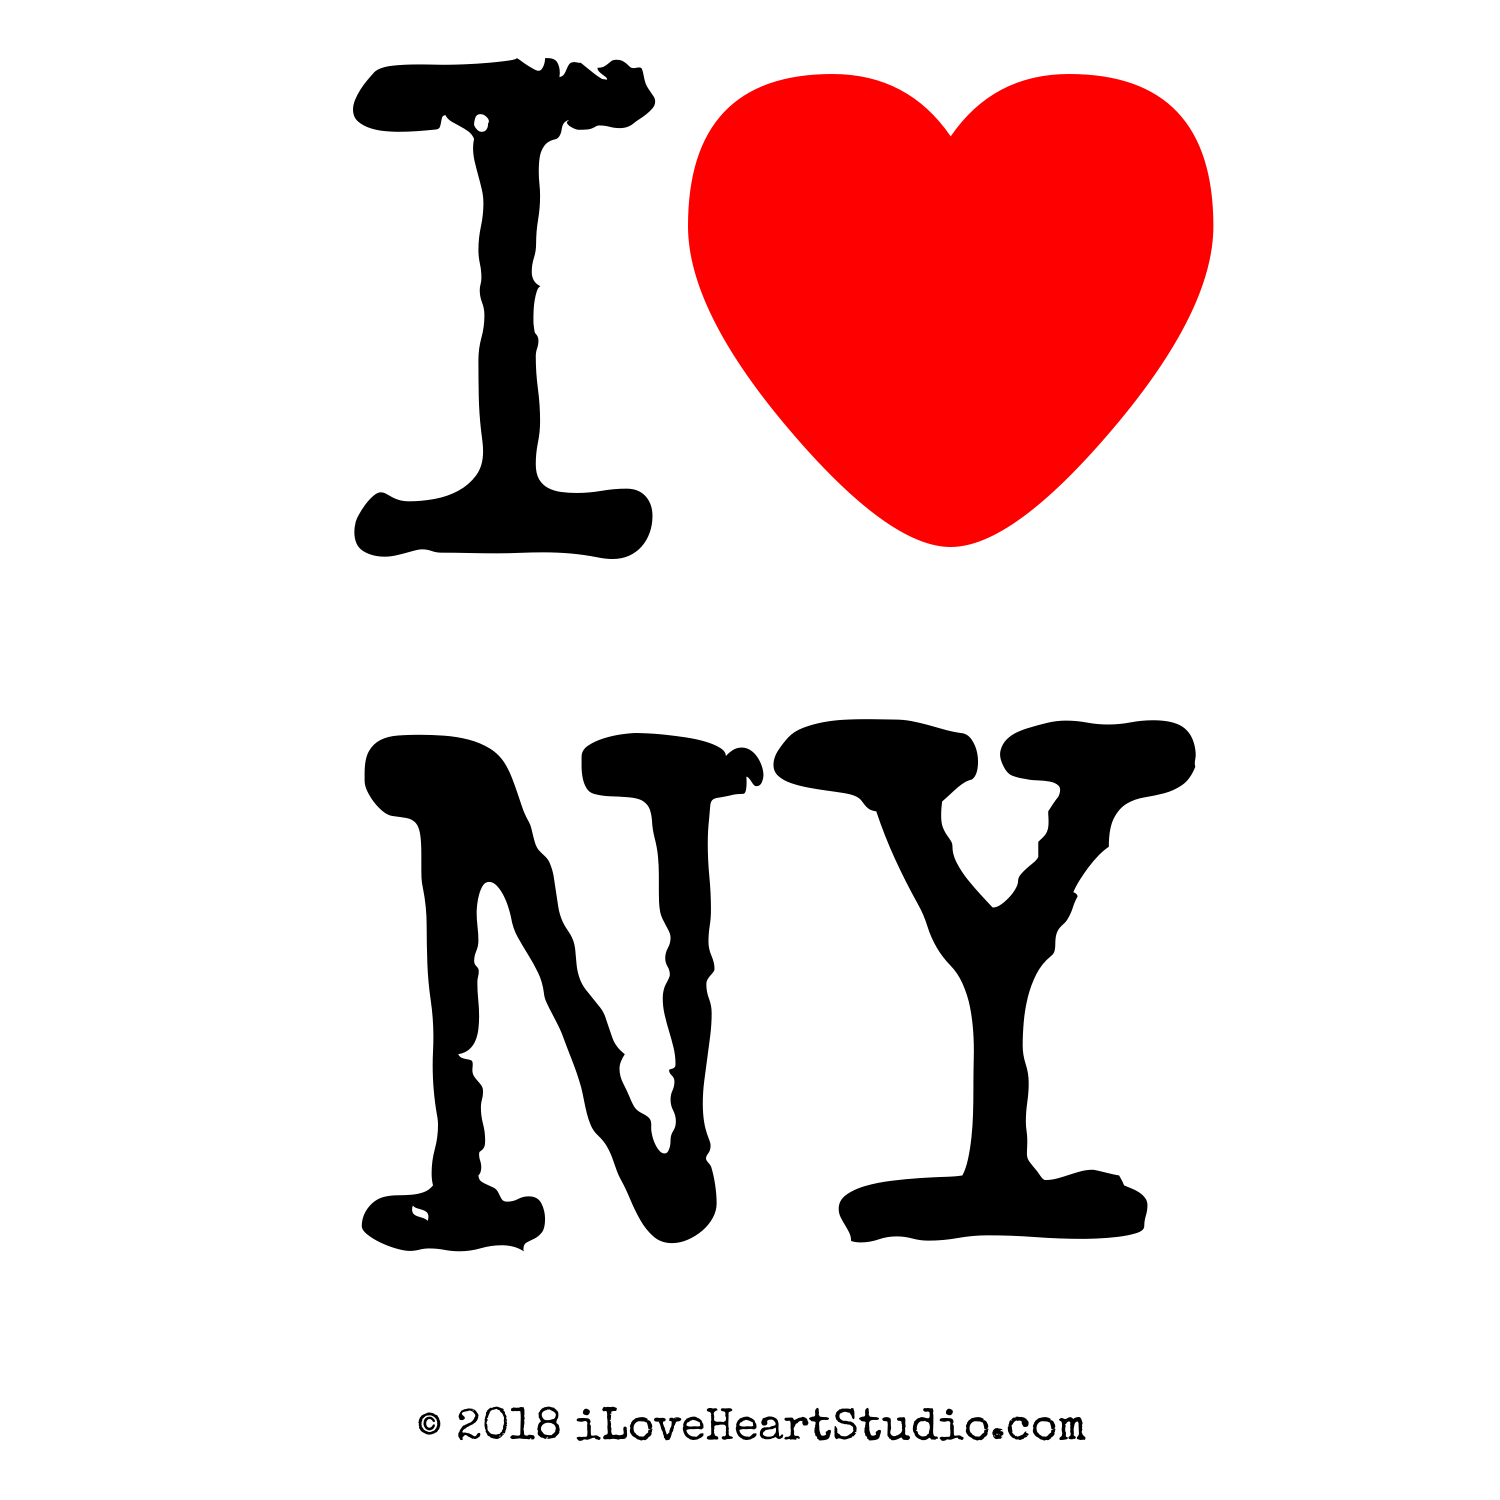 'i [Love heart] ny' design on t-shirt, poster, mug and ...